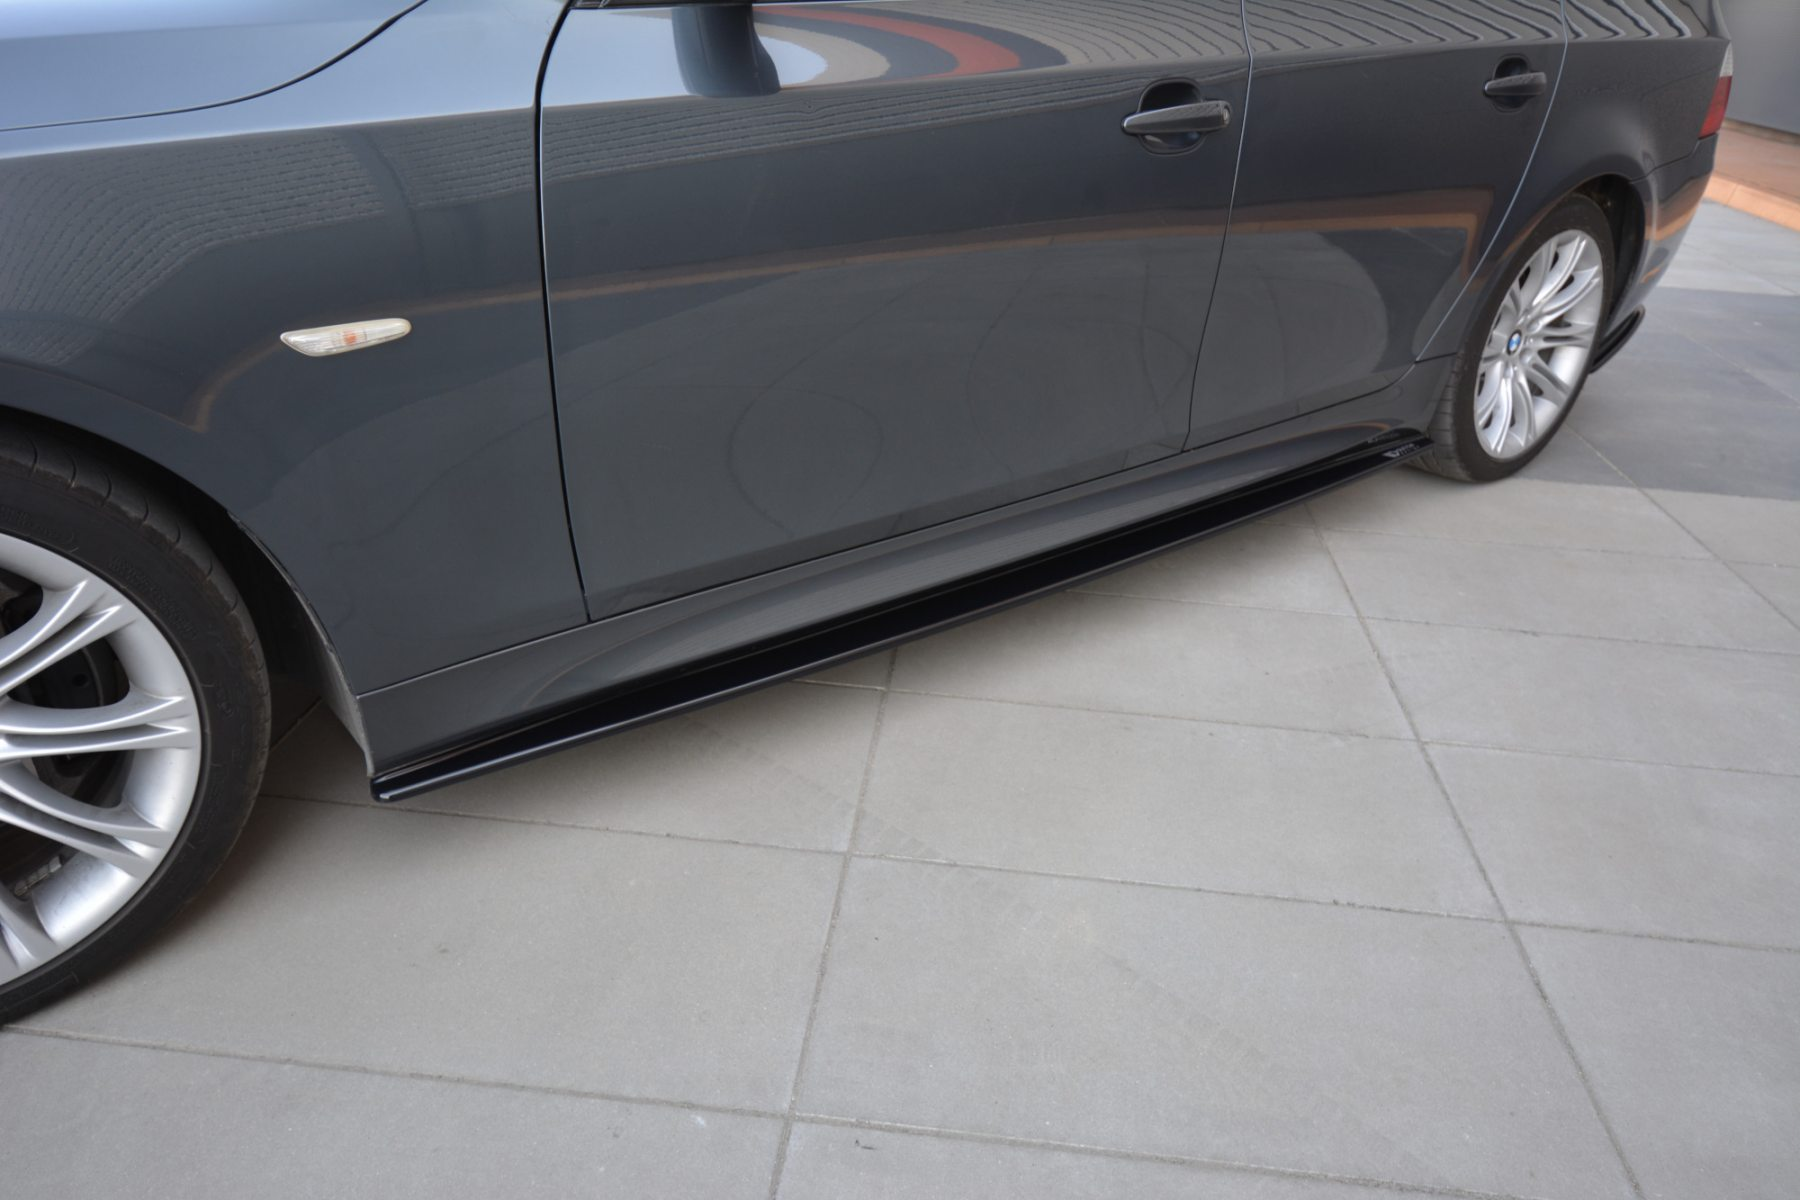 eng pl SIDE-SKIRTS-DIFFUSERS-BMW-5-E60-61-M-PACK-2135 7